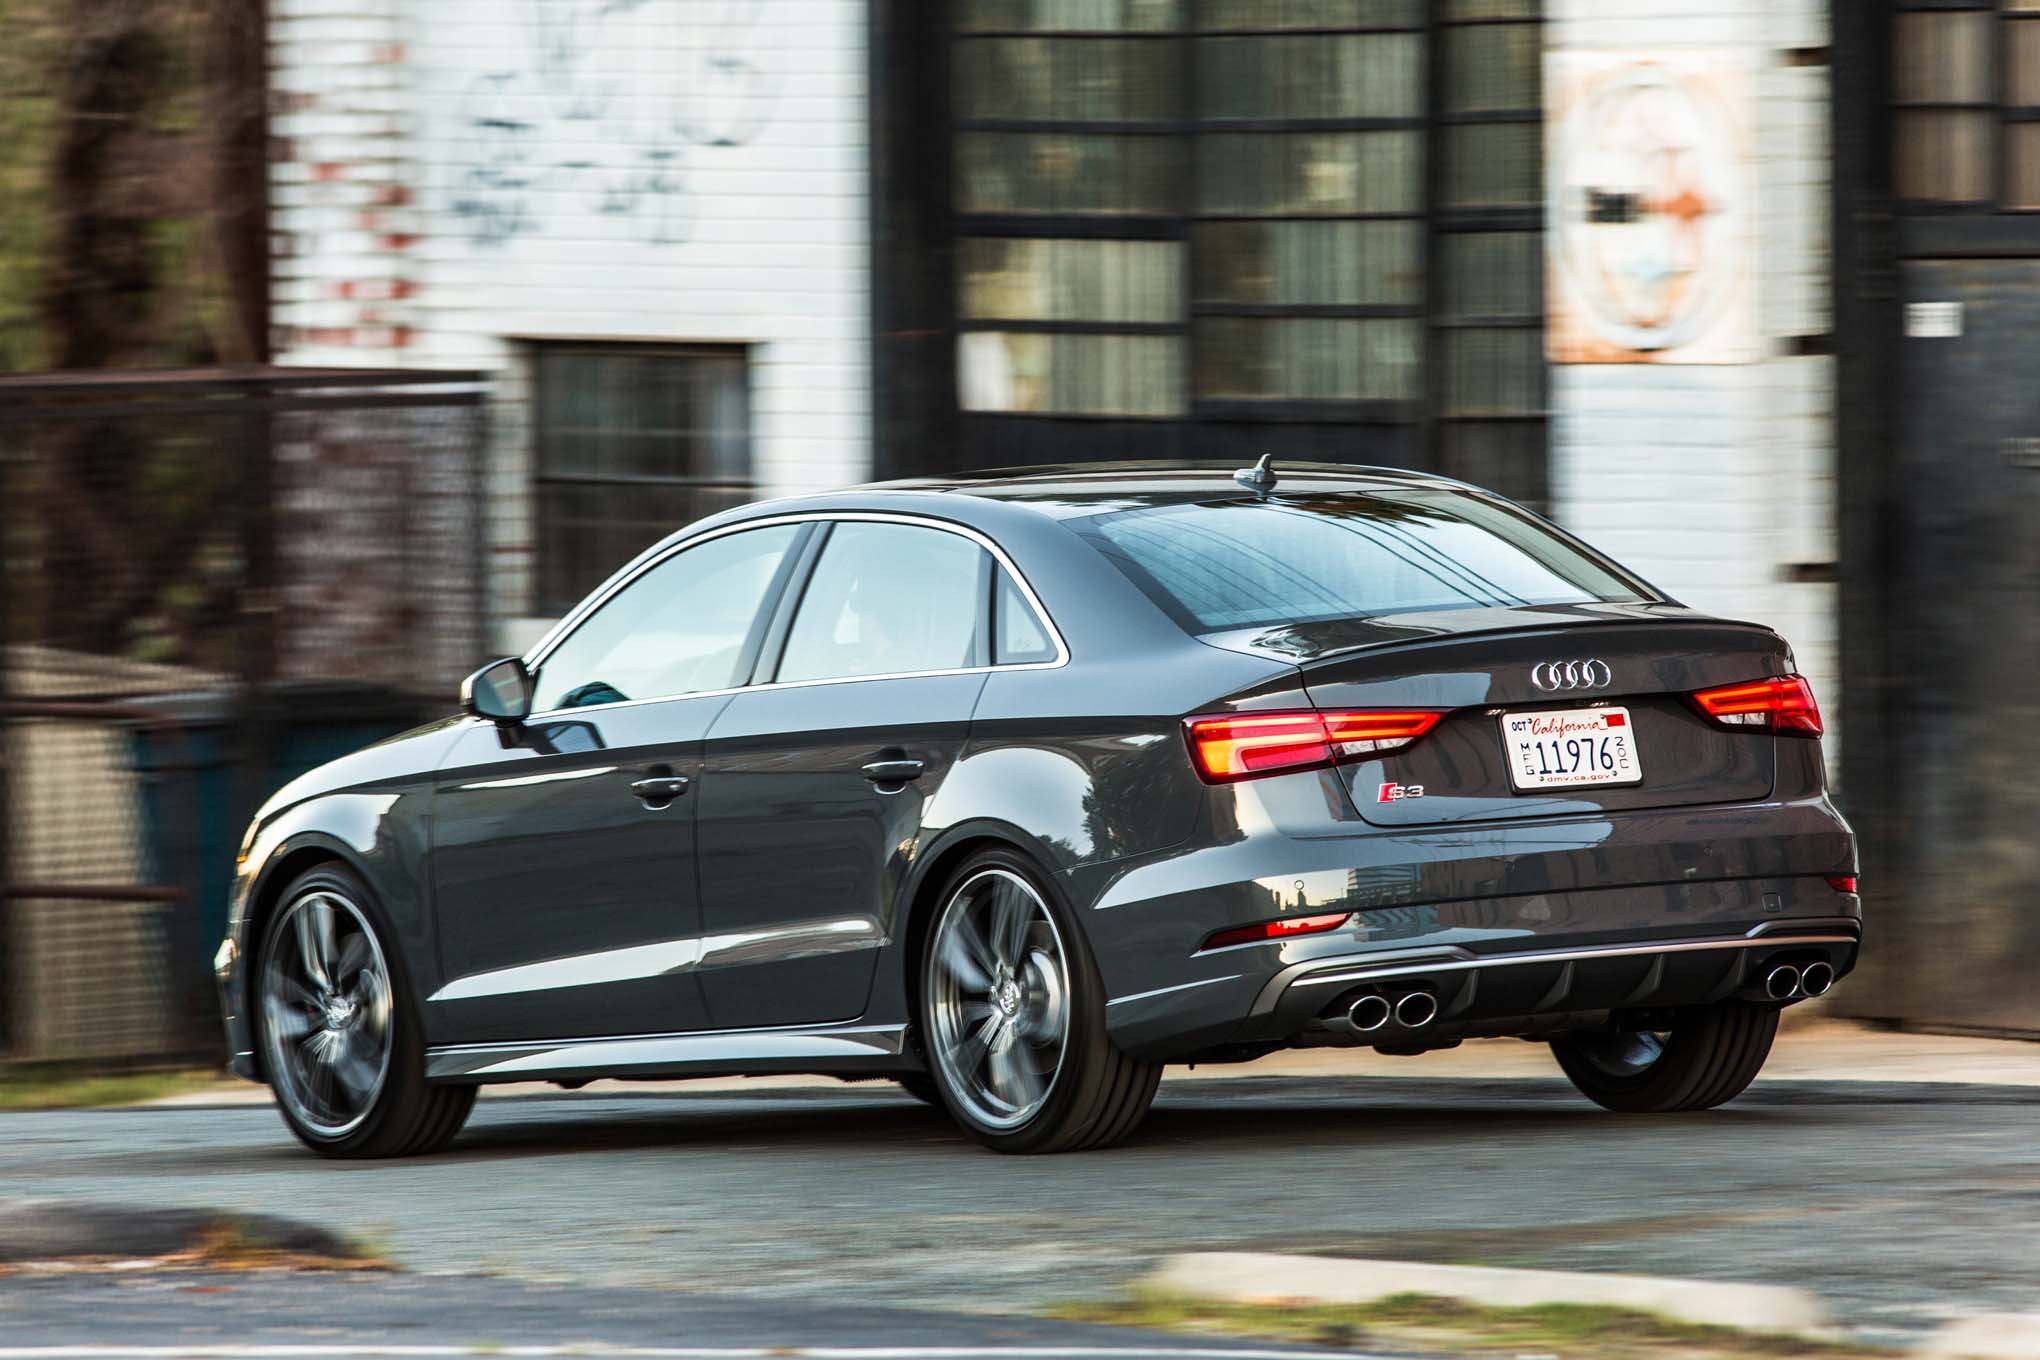 Audi S One Week Review Automobile Magazine - Audi s3